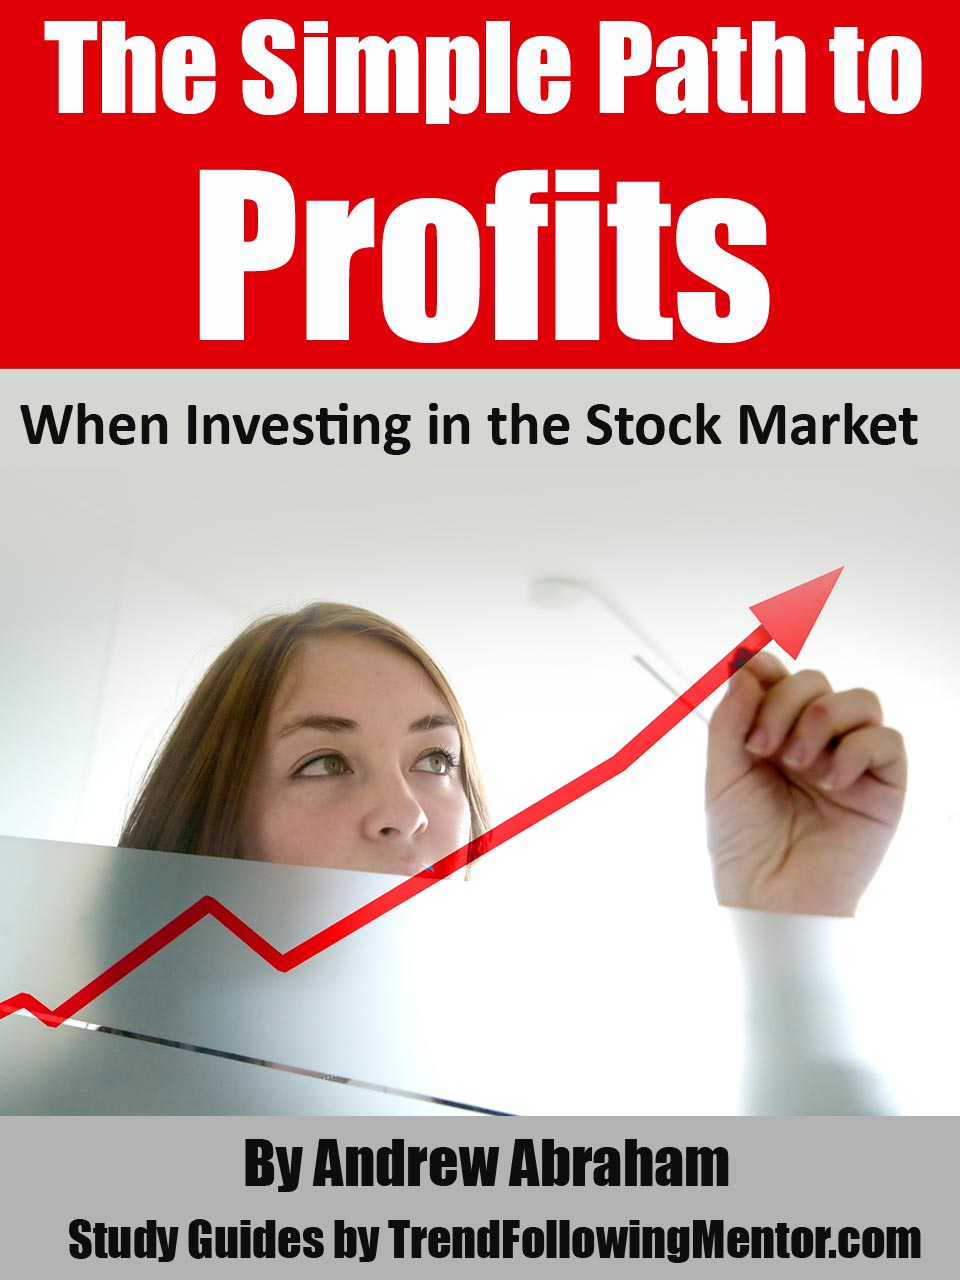 Paths of Profits When Investing in the Stock Market